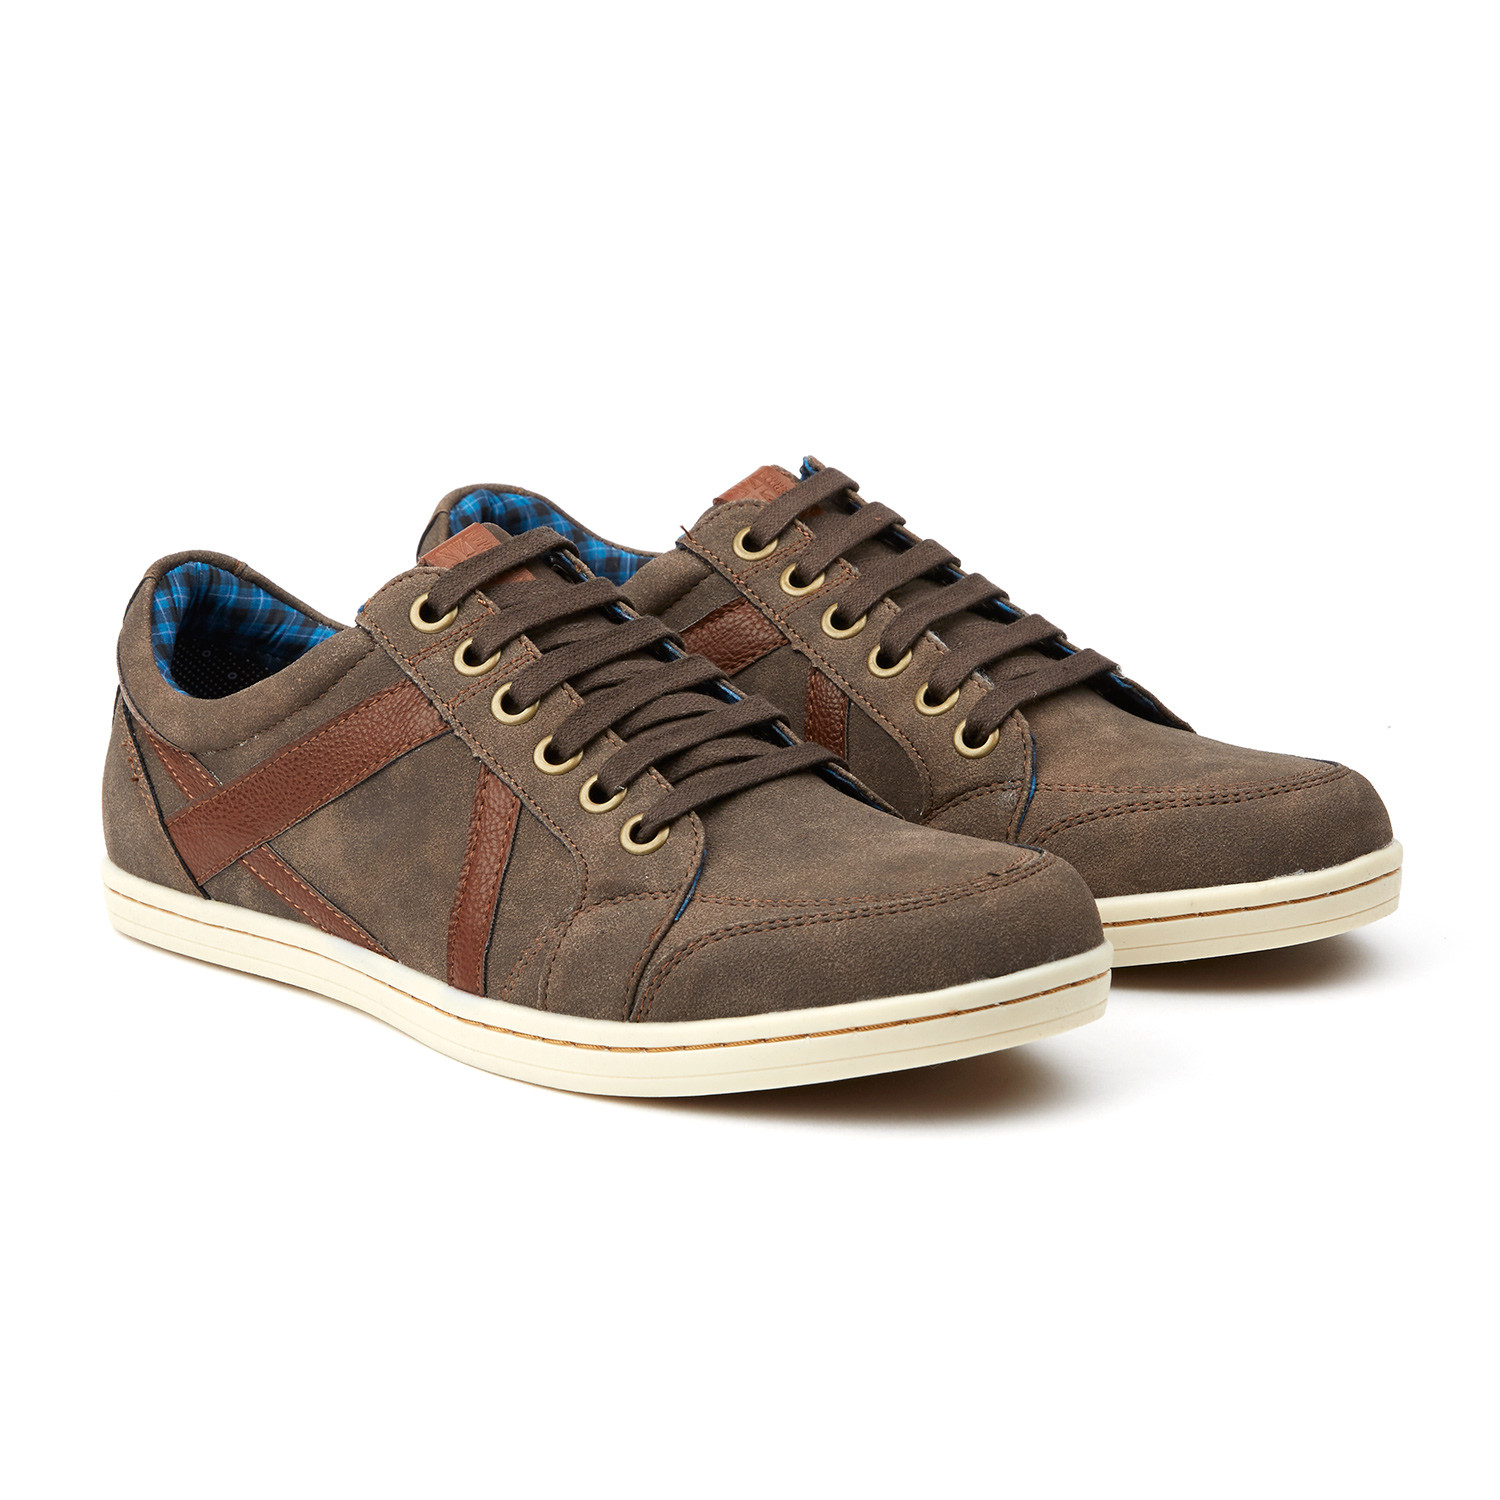 knox sneaker brown suede us 7 ben sherman shoes touch of modern. Black Bedroom Furniture Sets. Home Design Ideas